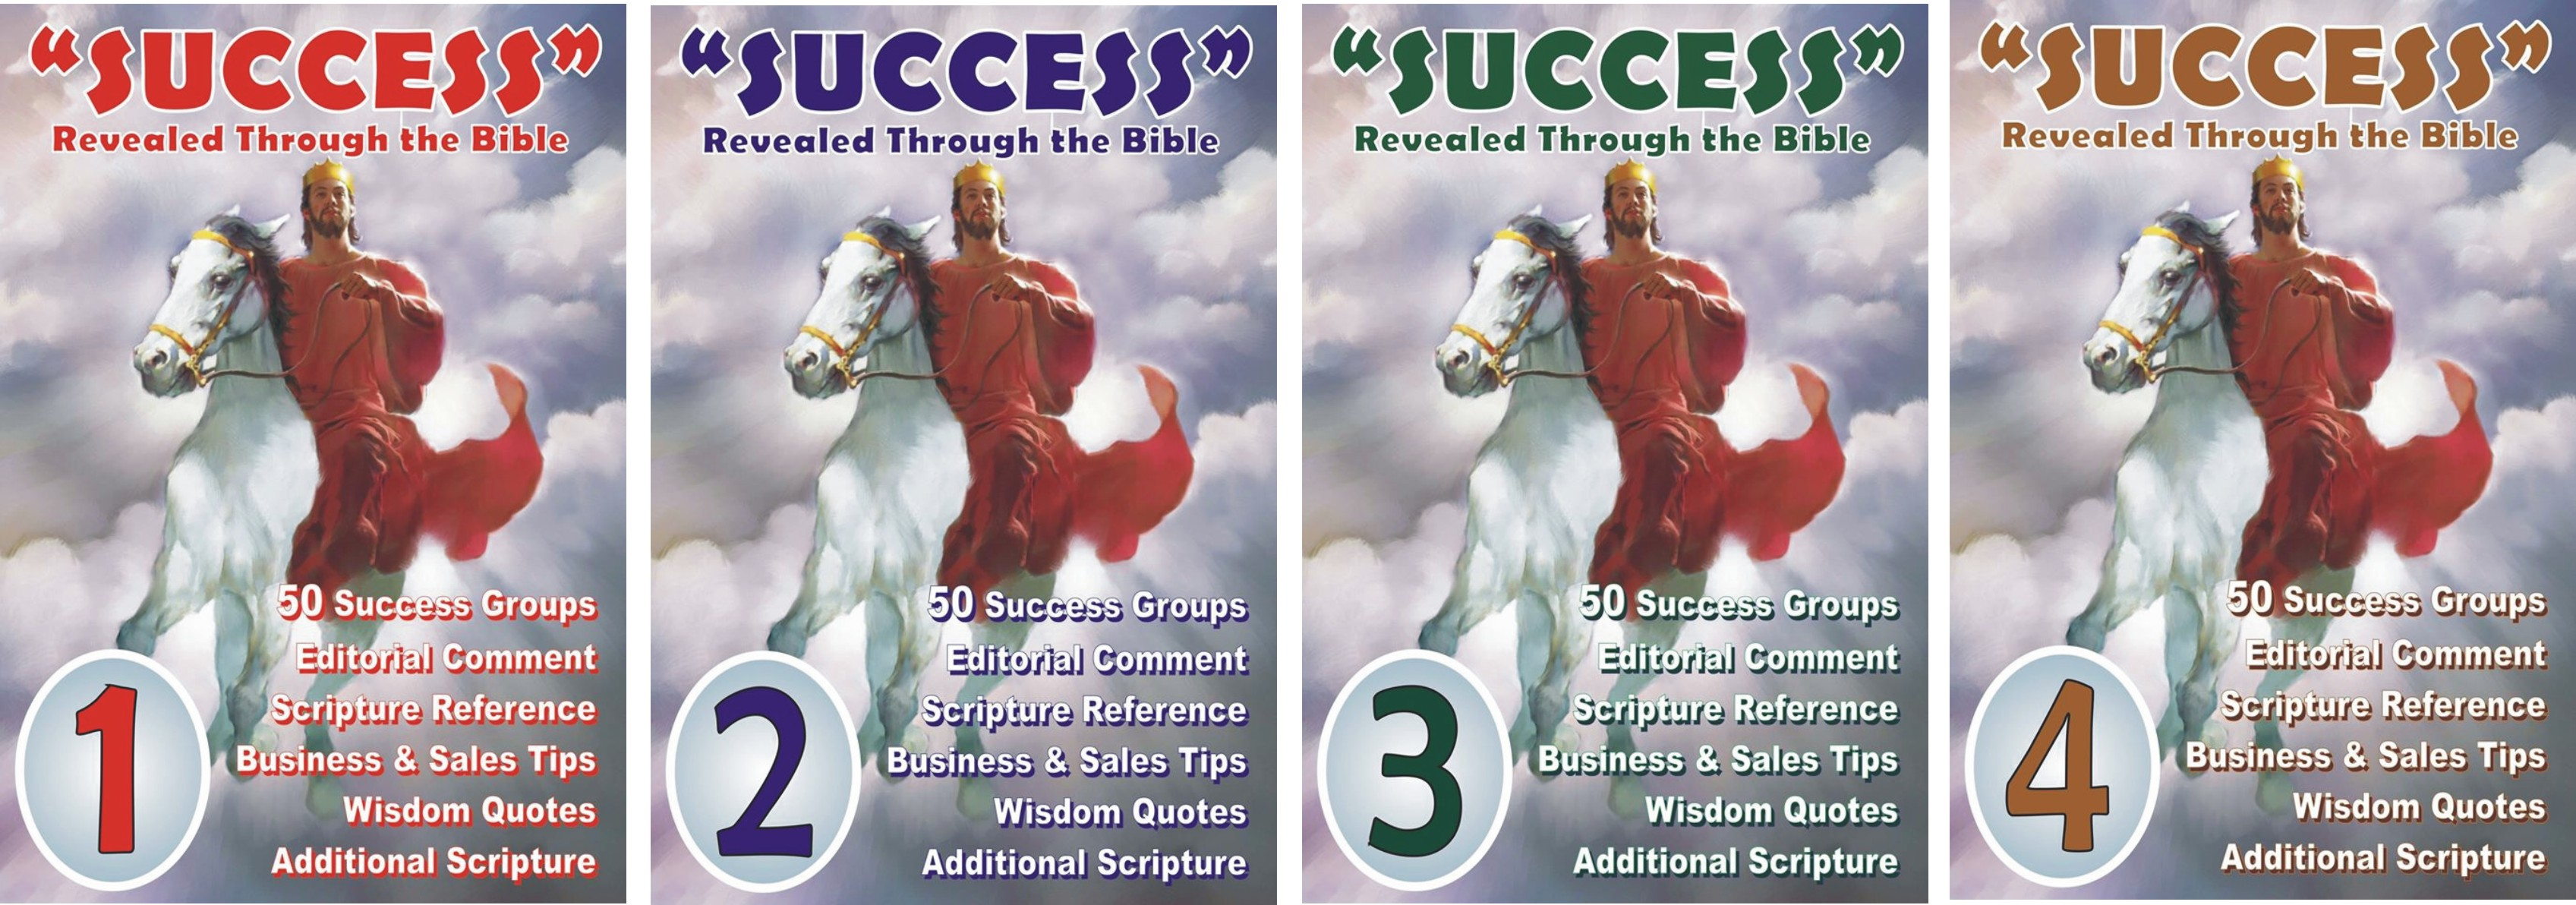 success-revealed-through-the-bible-montage